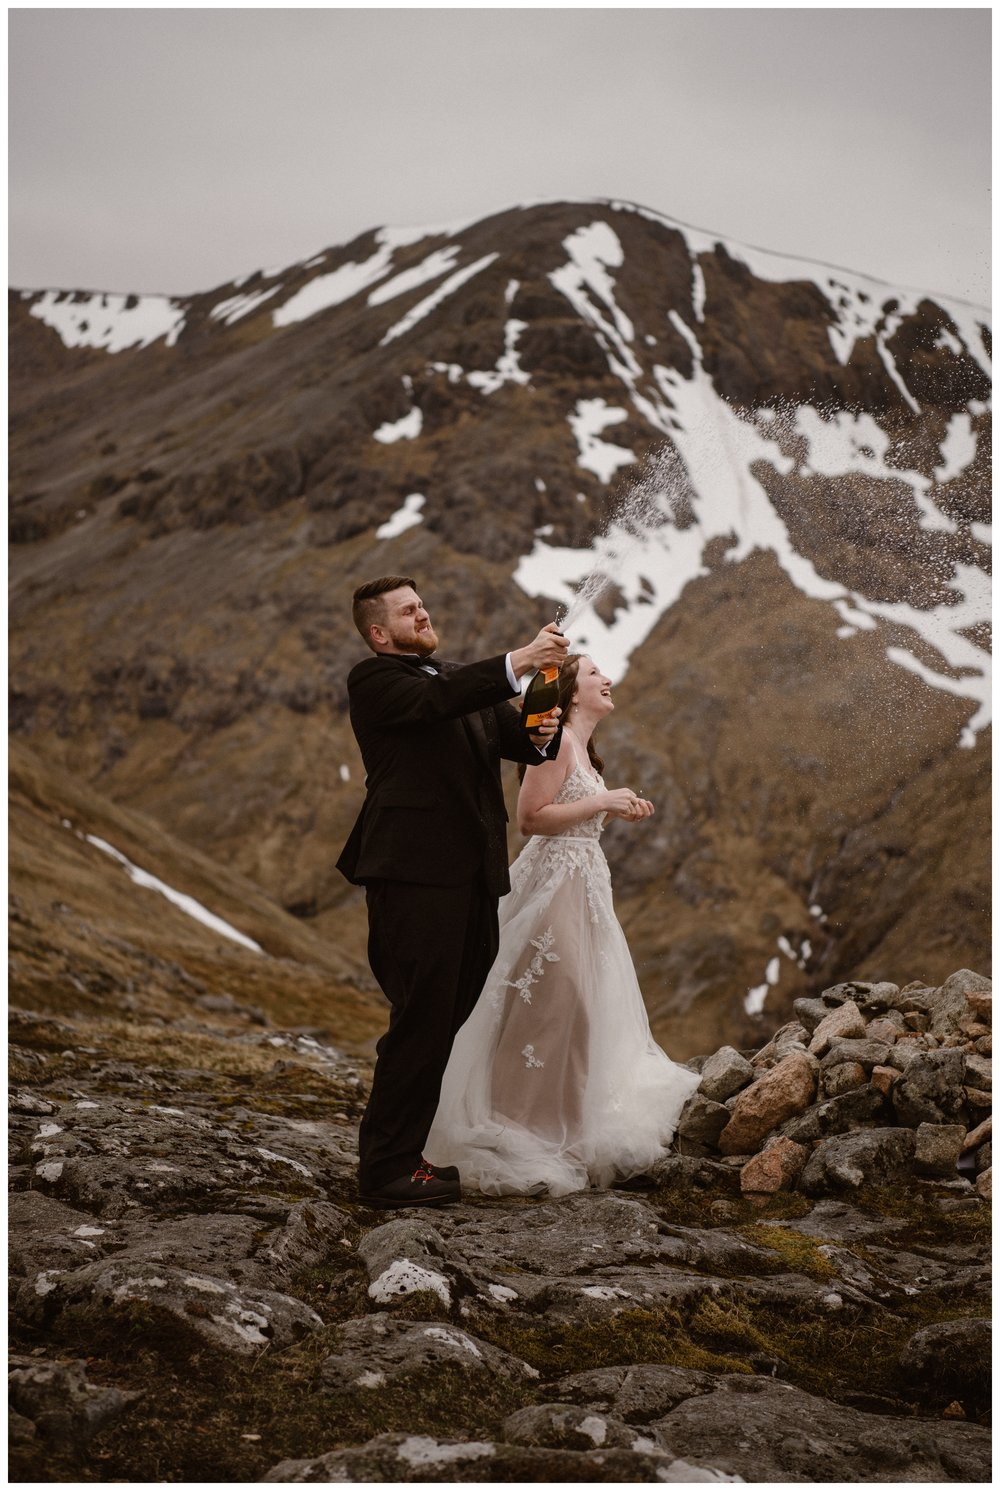 Elissa and Daniel celebrate saying their vows in the Scottish Highlands outside Glencoe, Scotland, with a bottle of champagne. Photo by Maddie Mae, Adventure Instead.